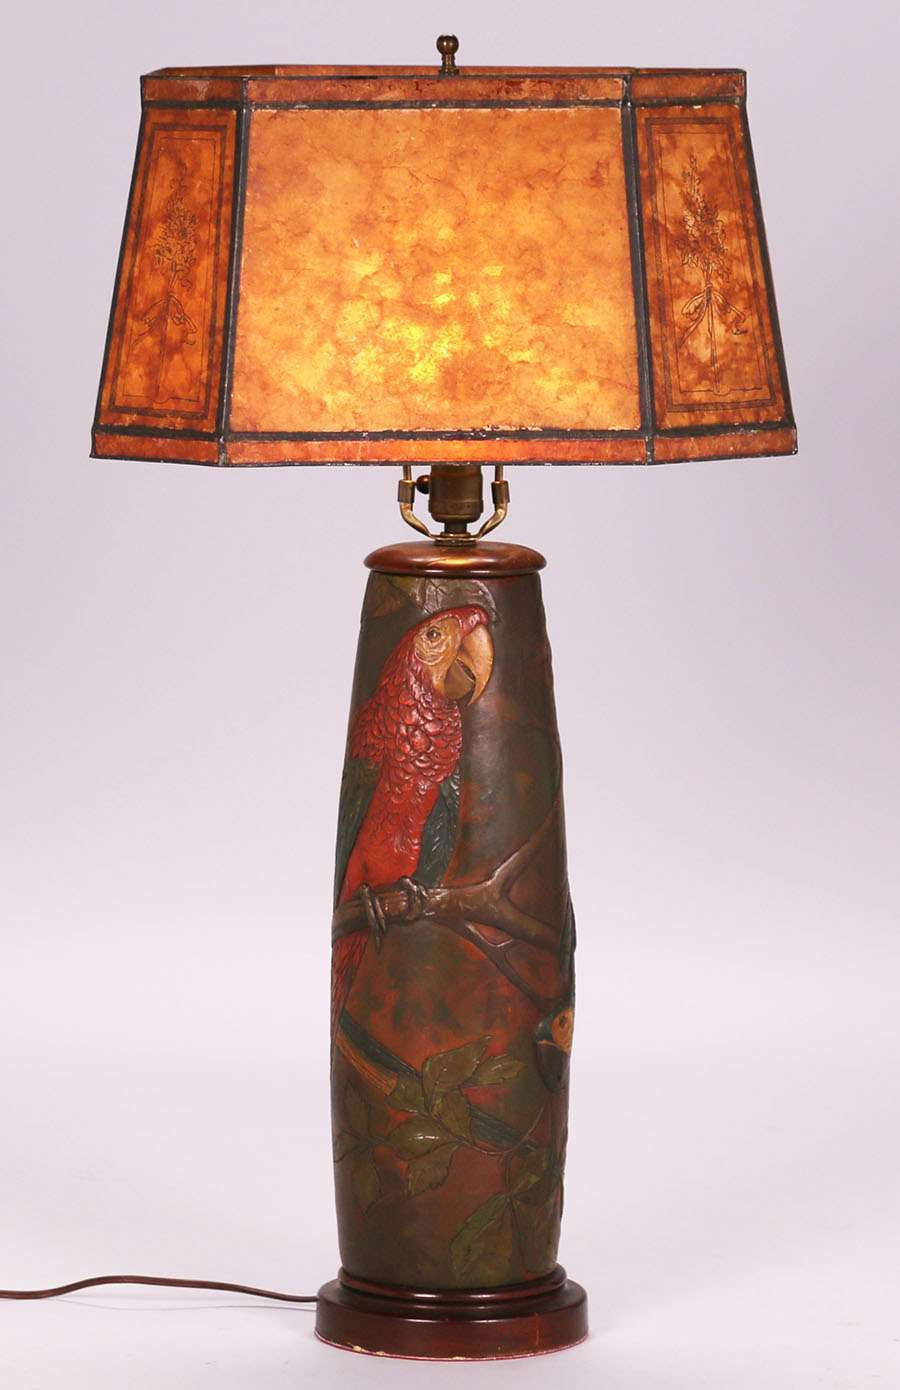 Arts U0026 Crafts Hand Tooled Leather Lamp With Exquisite Parrot Design C1920s.  The Leather Workmanship Of This Lamp Is As Good As It Gets. Unsigned.